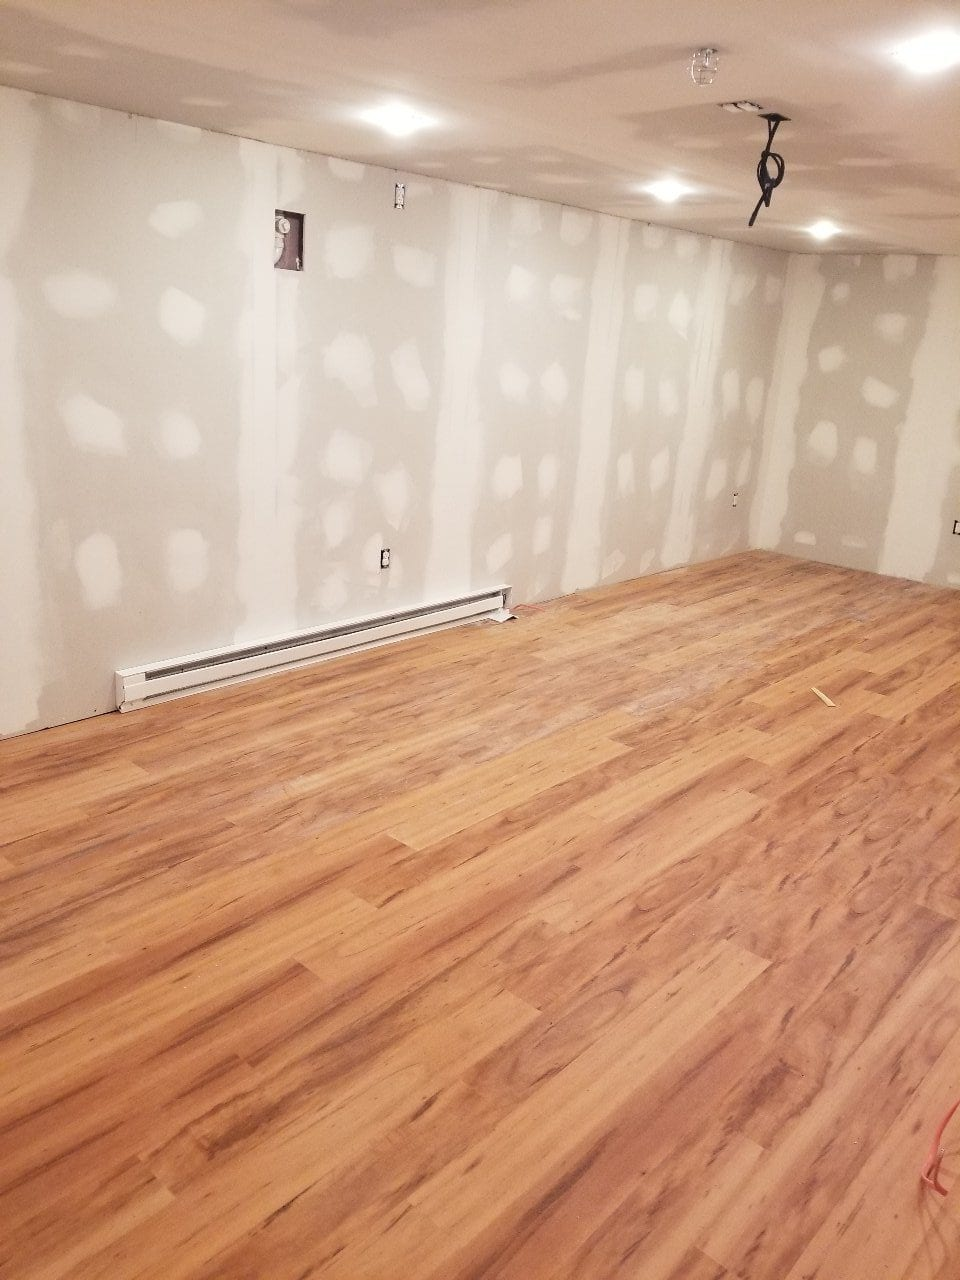 drywall, access plumbing, home solutions, more space, basement remodeling, walls, doors, flooring, finish carpentry, worcester, shrewsbury, metrowest,